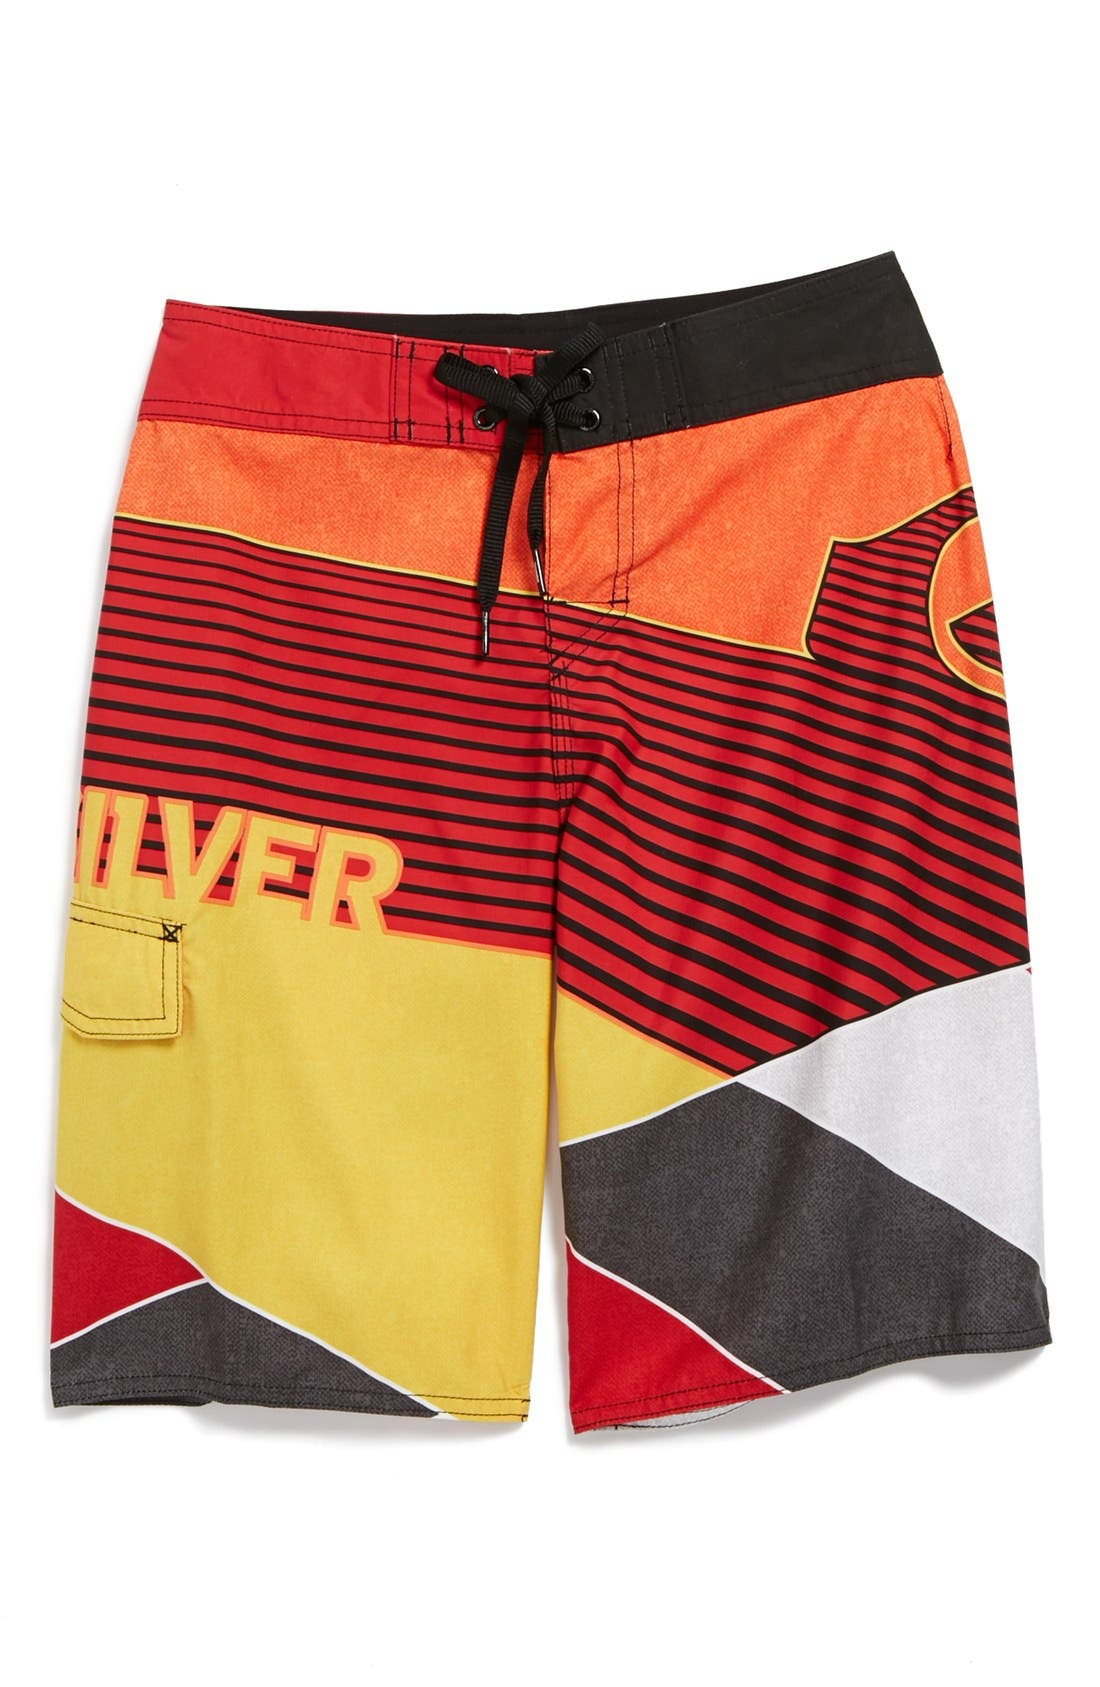 Main Image - Quiksilver 'Beach Day' Board Shorts (Little Boys)